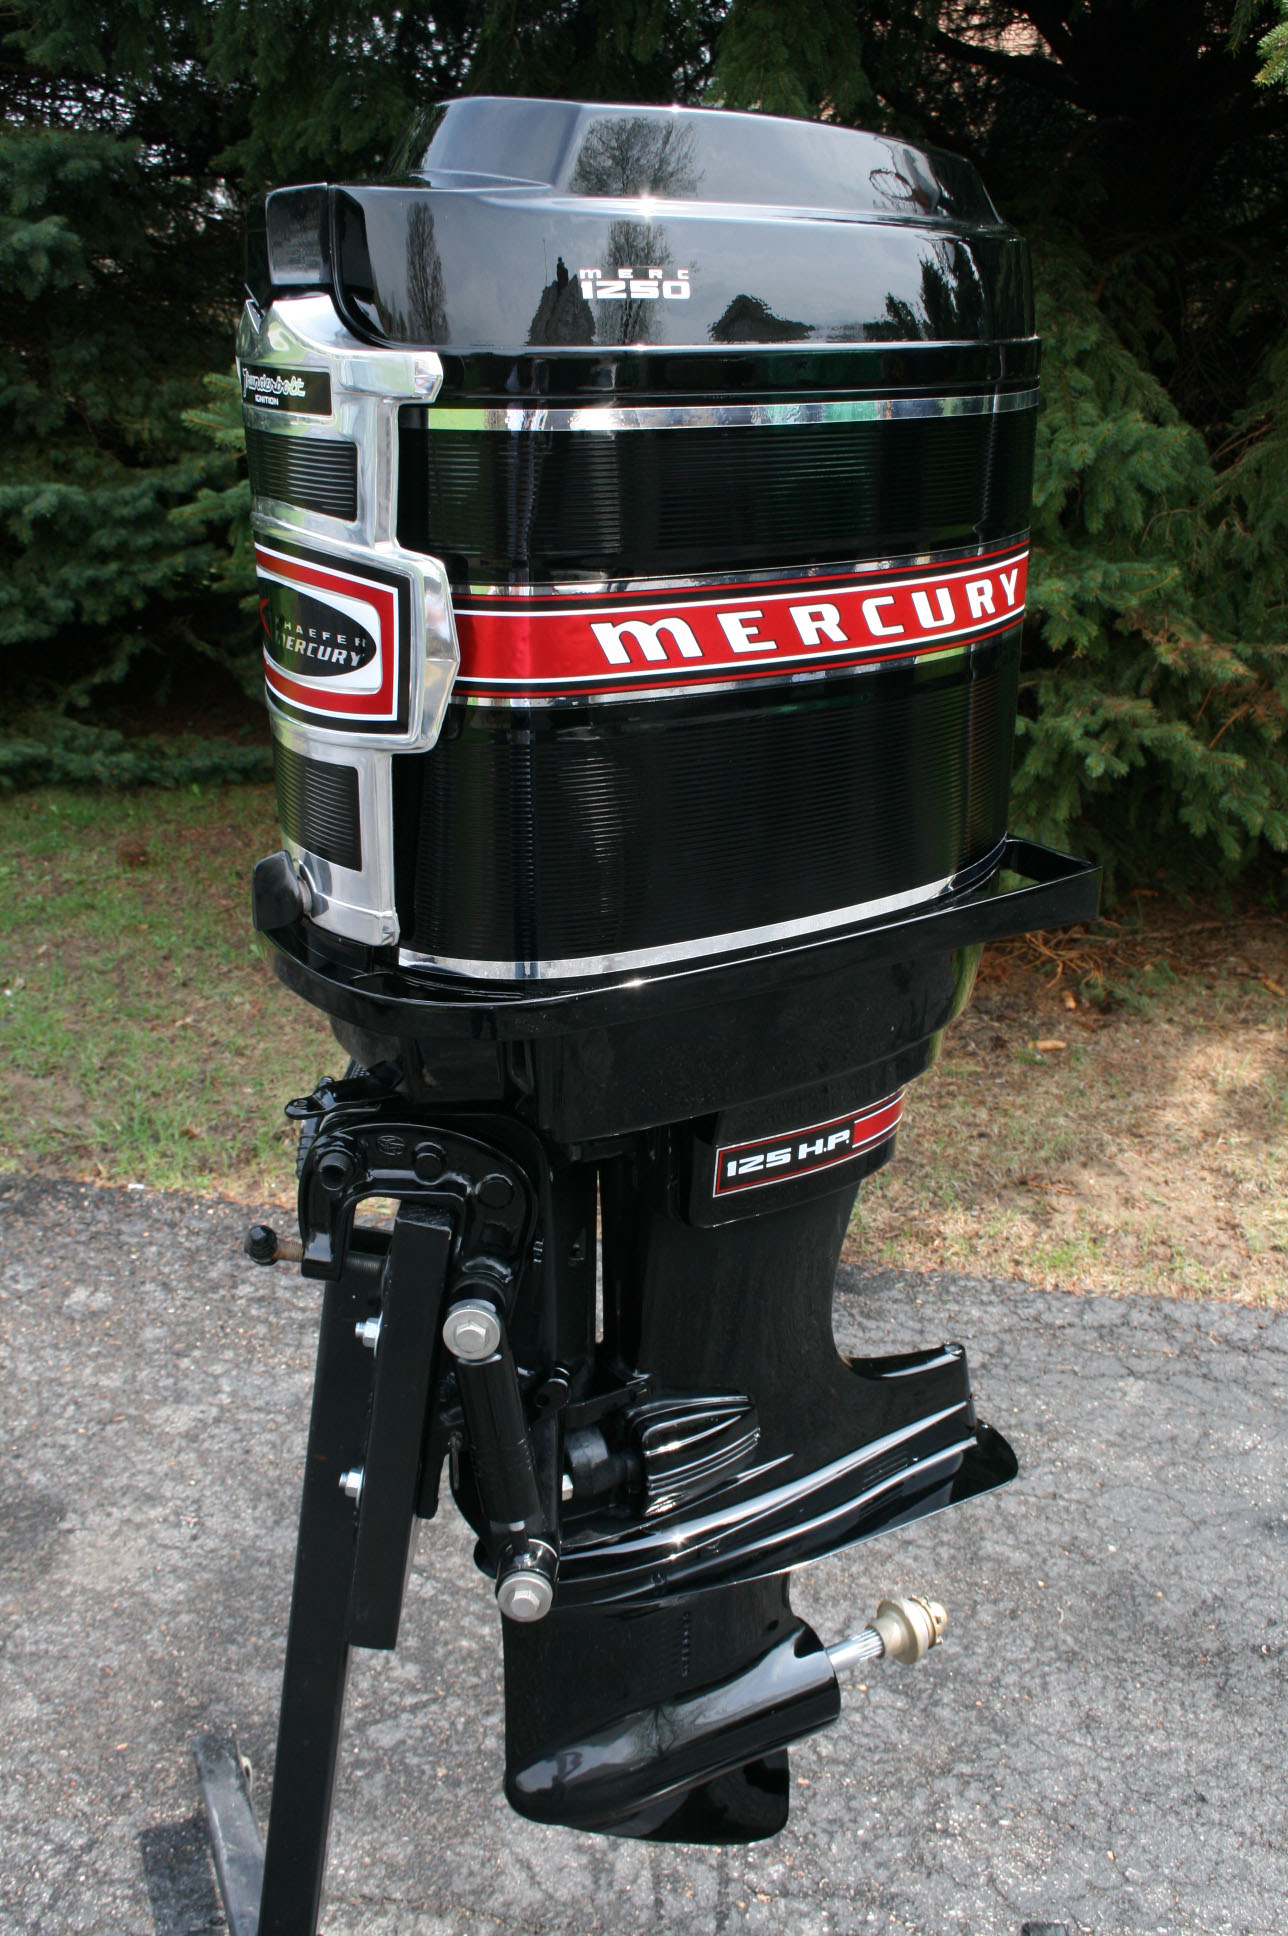 El besides  together with  furthermore Bxp Evinrude Thermostat Assembly Hp together with Maxresdefault. on 1970 evinrude 115 hp outboard